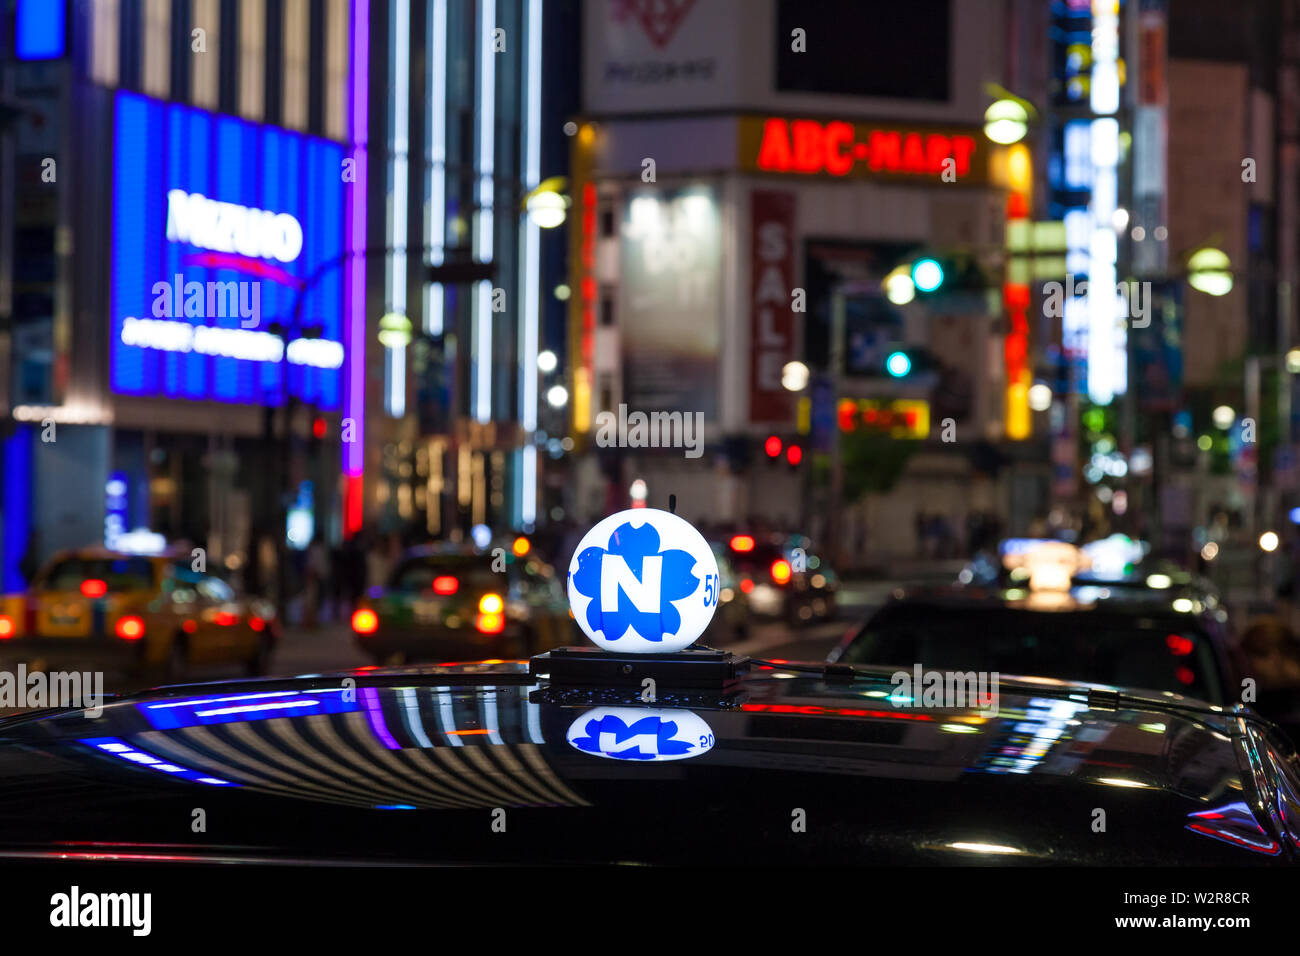 Roof of taxi and neon advertising signs at night in Shinjuku District, Tokyo, Japan. - Stock Image